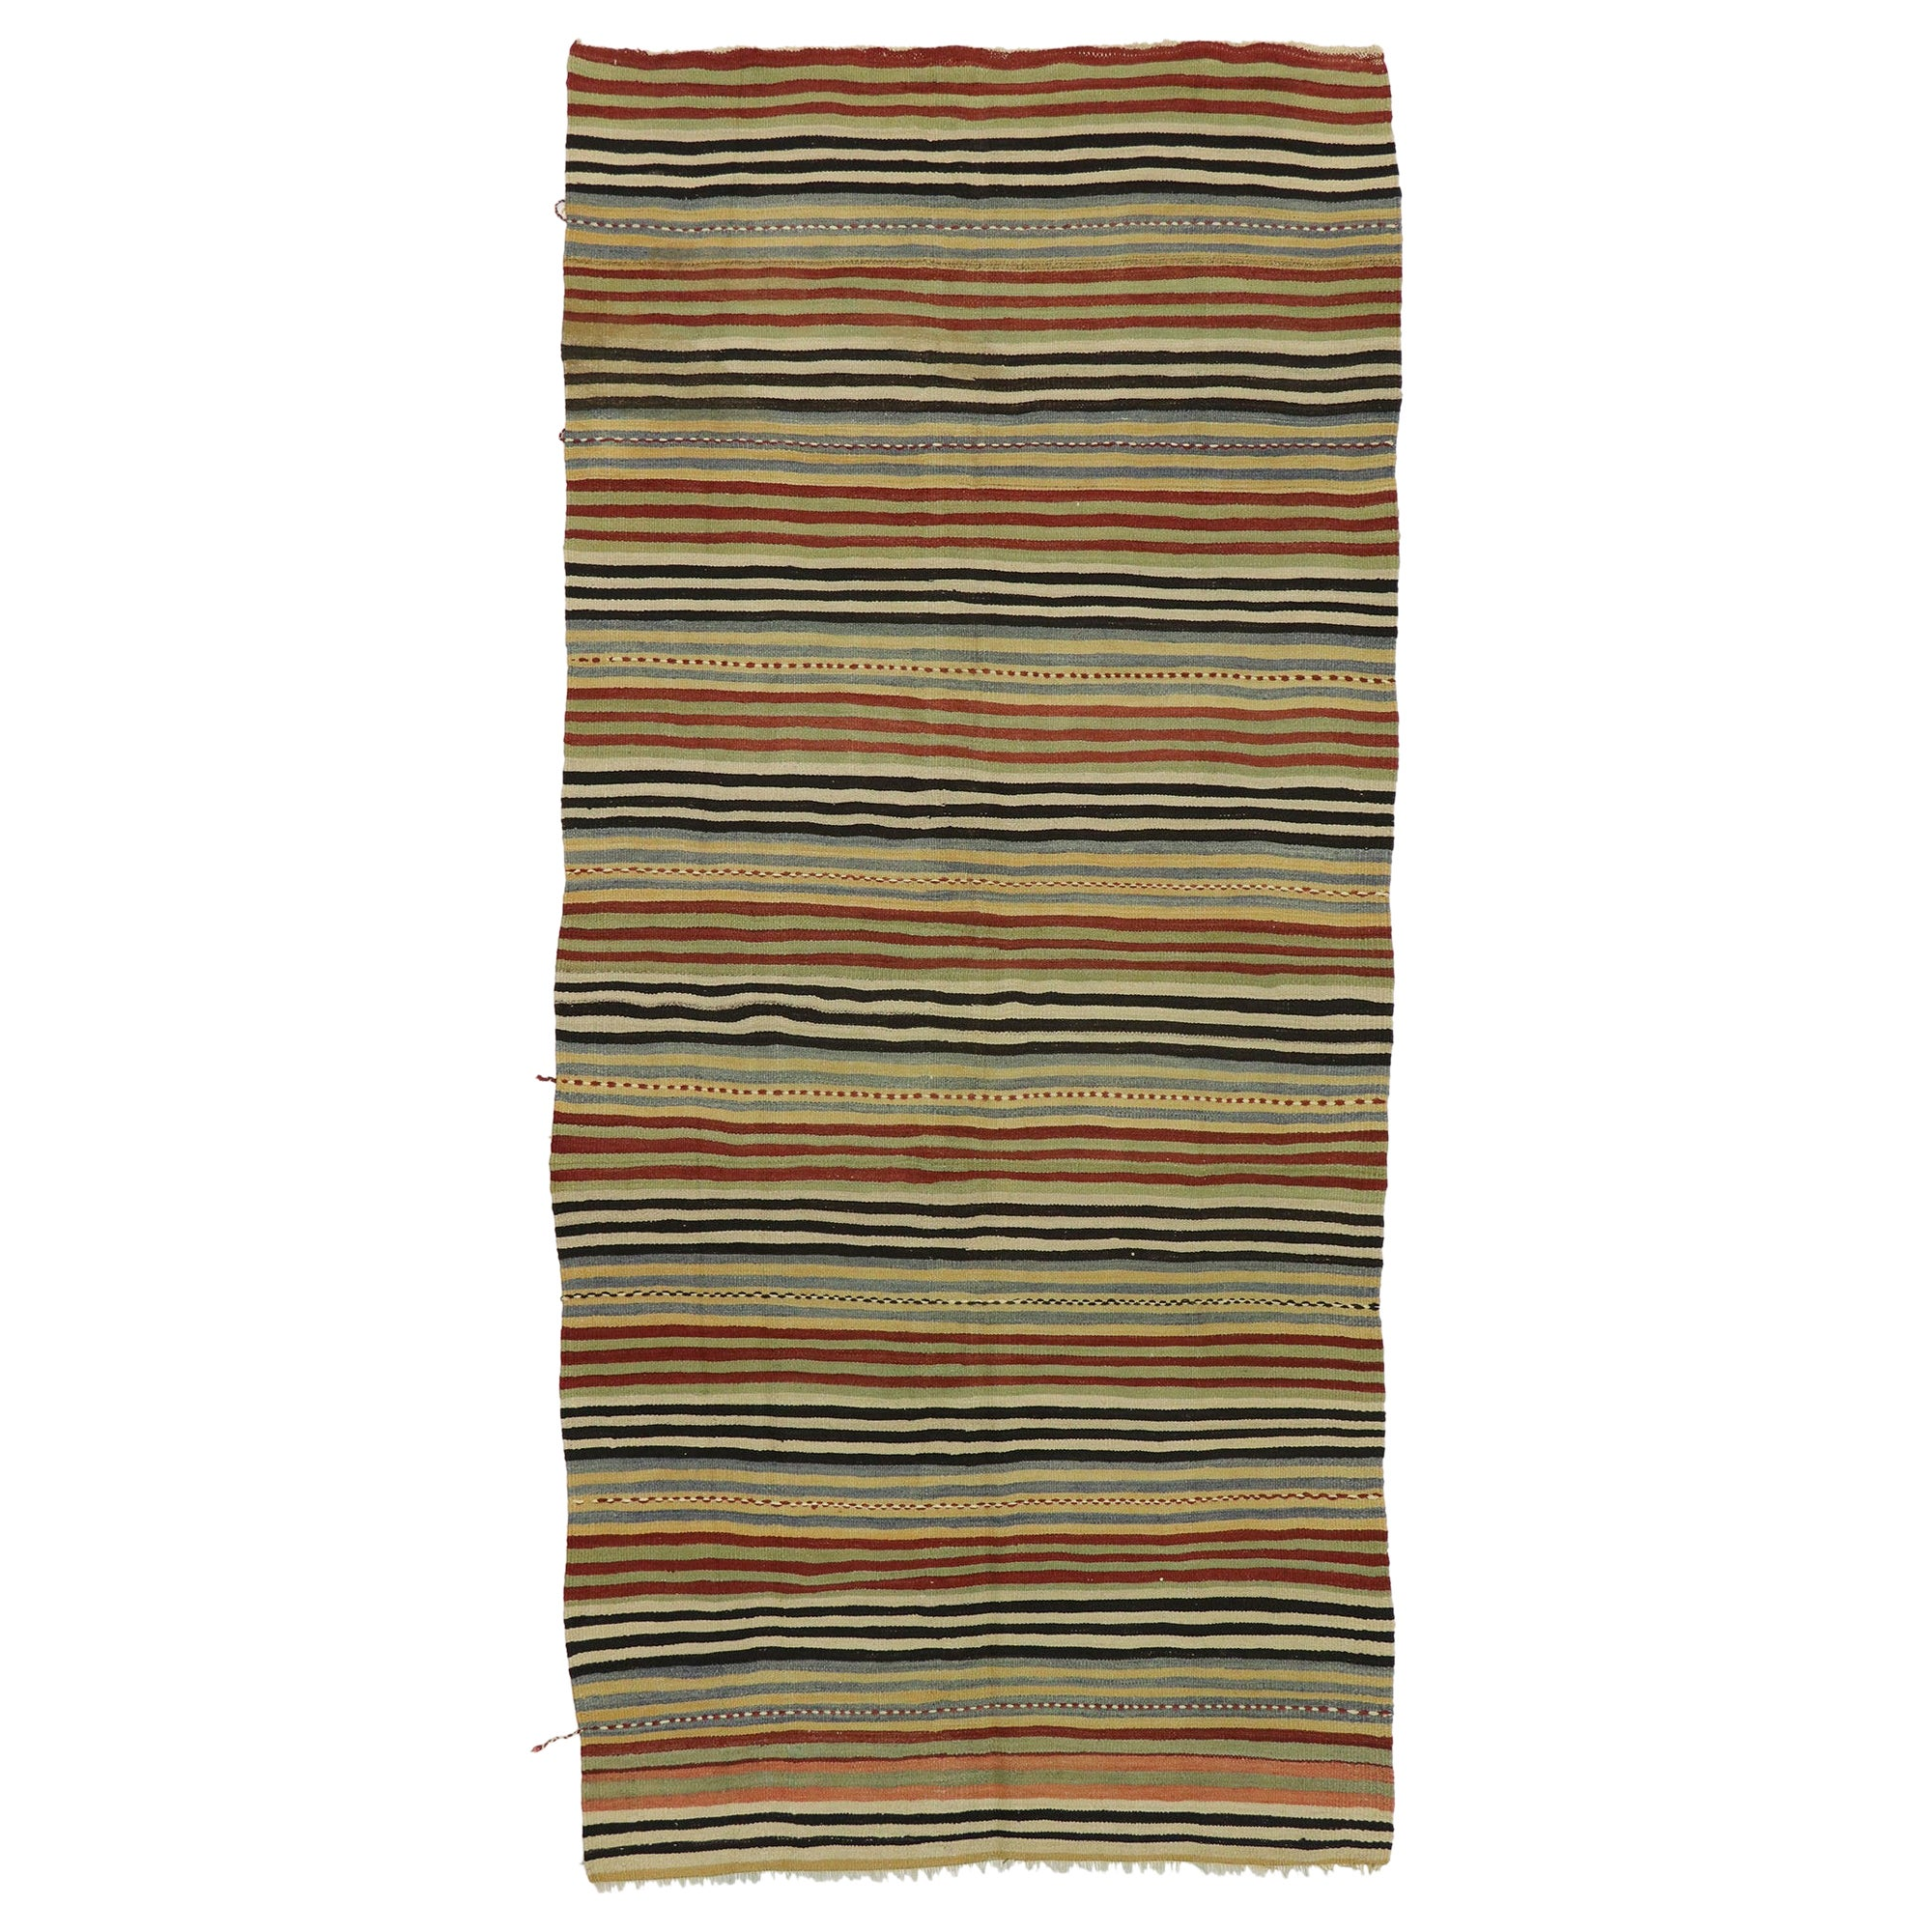 Vintage Turkish Striped Kilim Runner with Rustic Modern Style